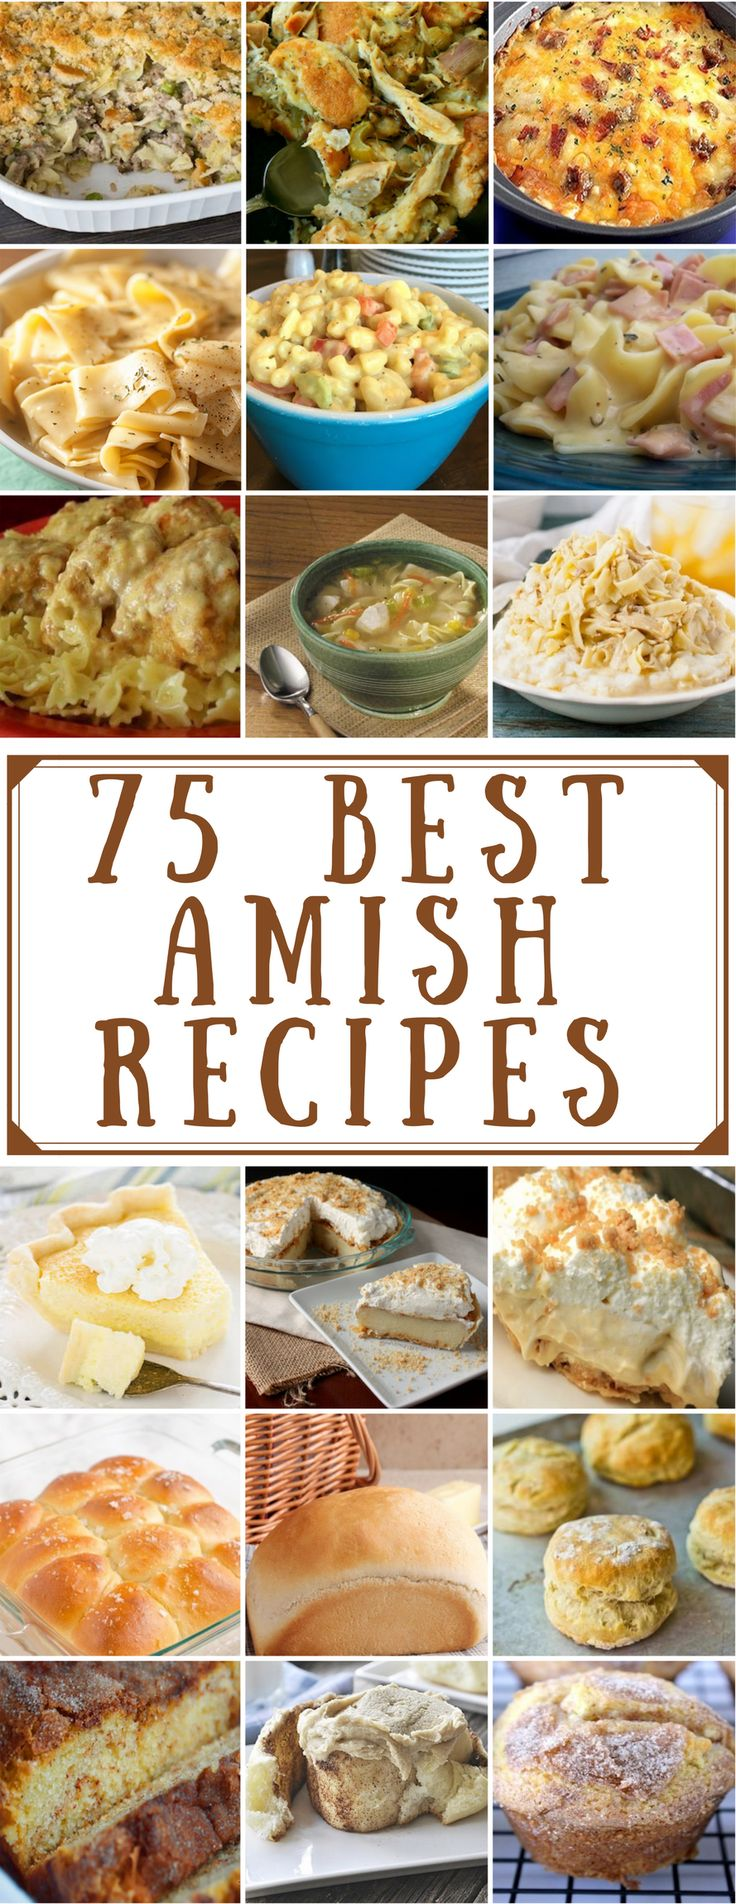 75 Best Amish Recipes